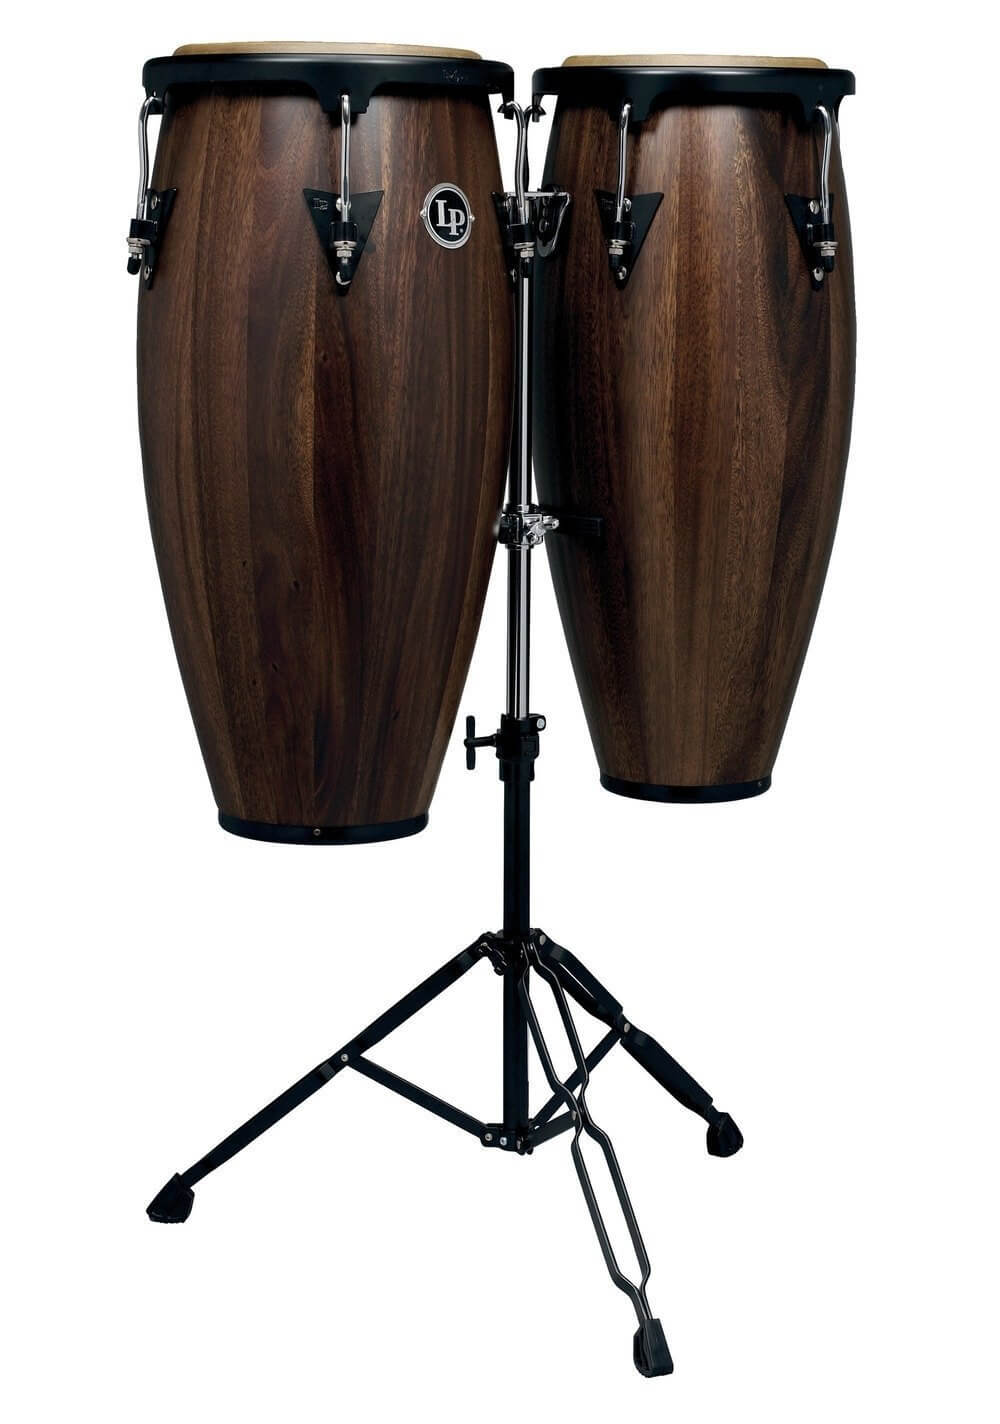 Set Congas Latin Percussion Lpa646 10-11 Walnut